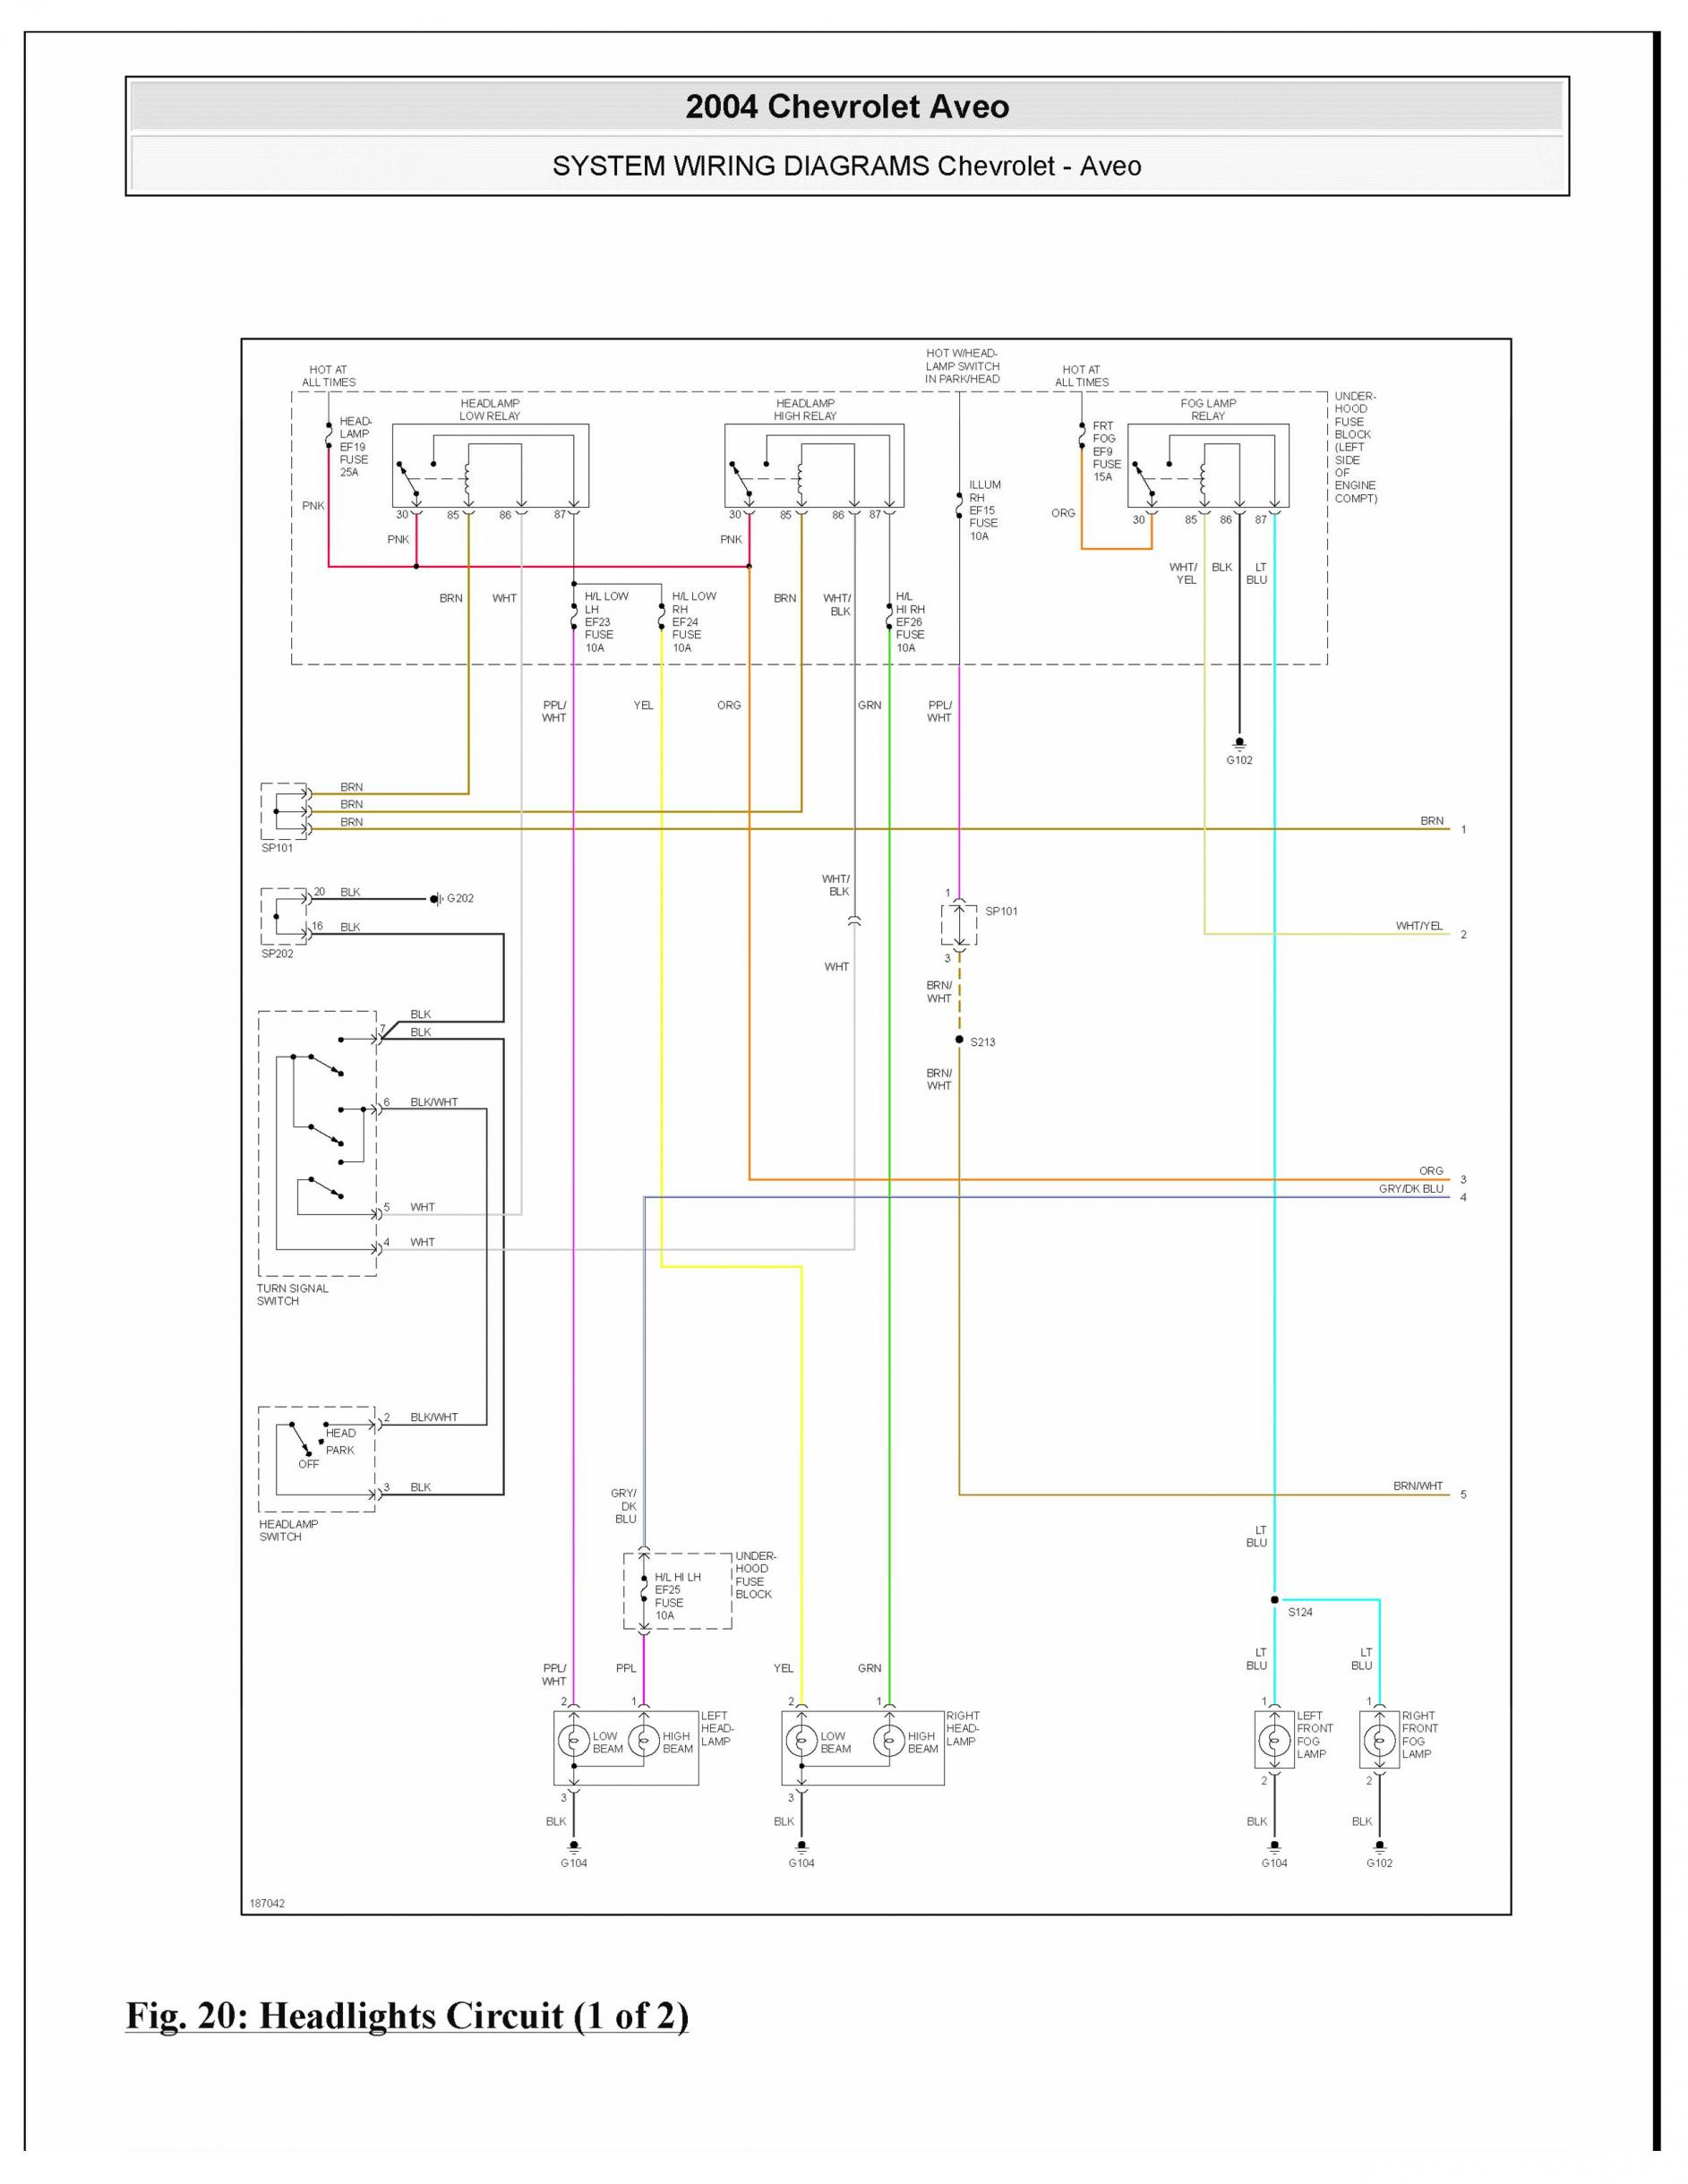 No Headlights  Can Find A Wiring Diagram